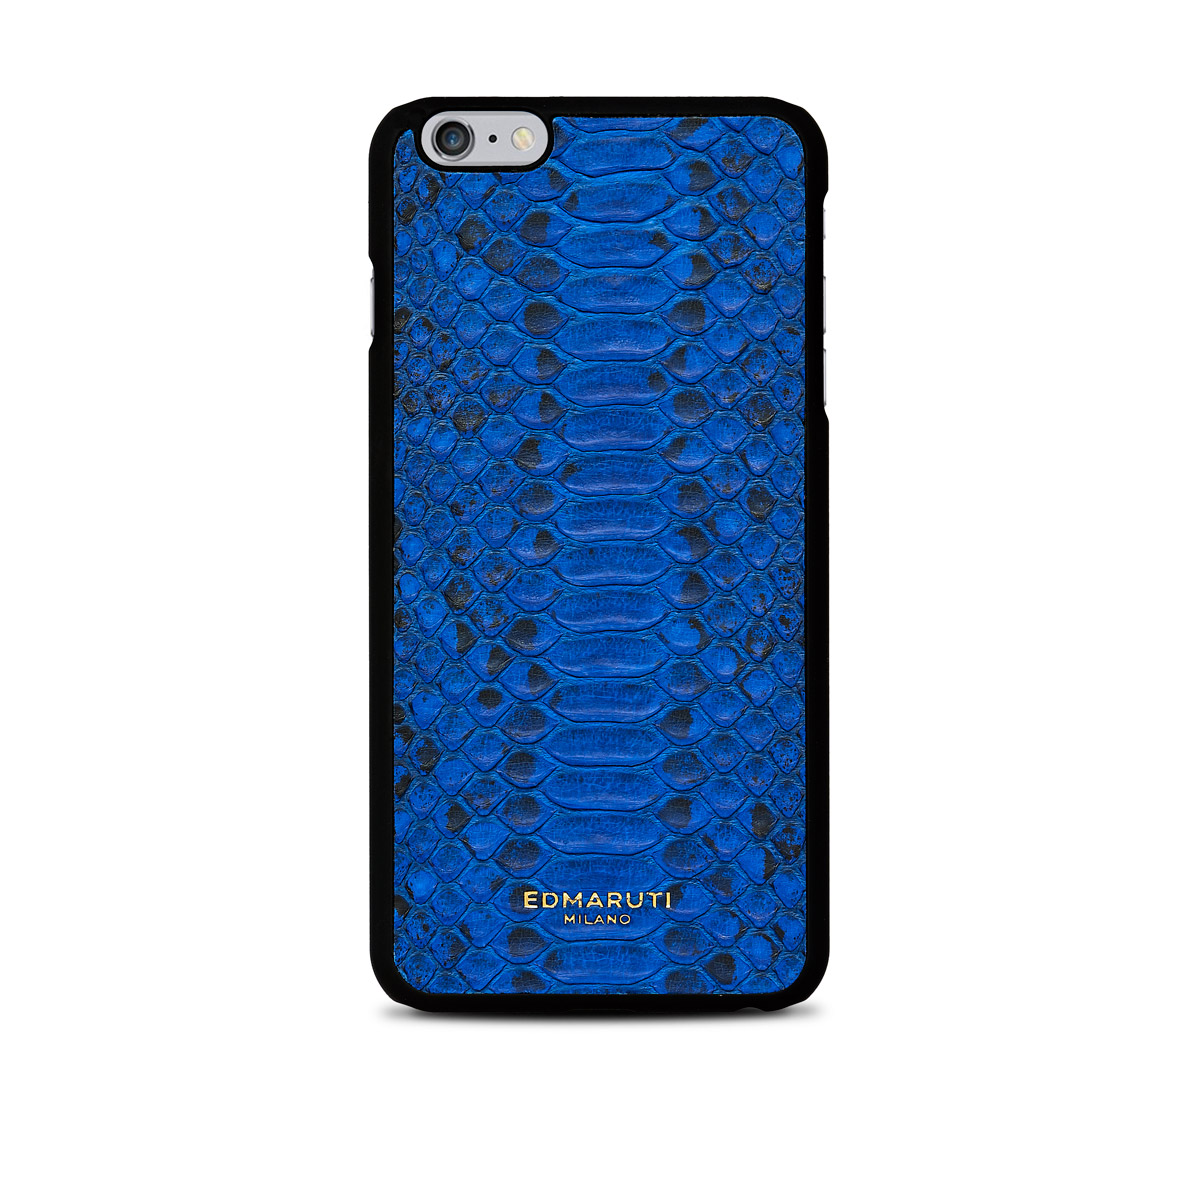 iphone 6s plus case python blue edmaruti. Black Bedroom Furniture Sets. Home Design Ideas